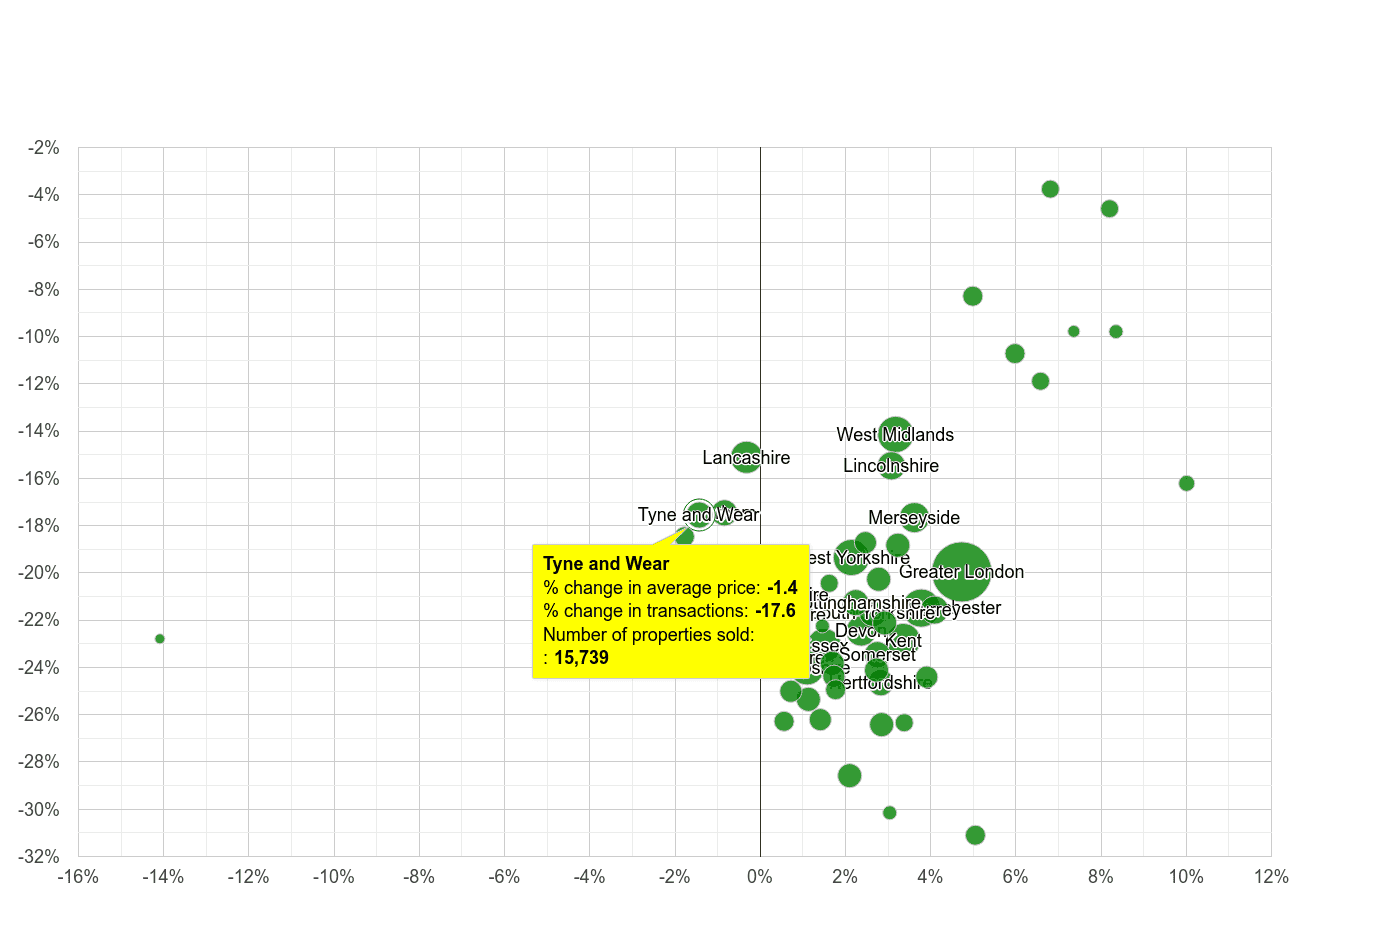 Tyne and Wear property price and sales volume change relative to other counties